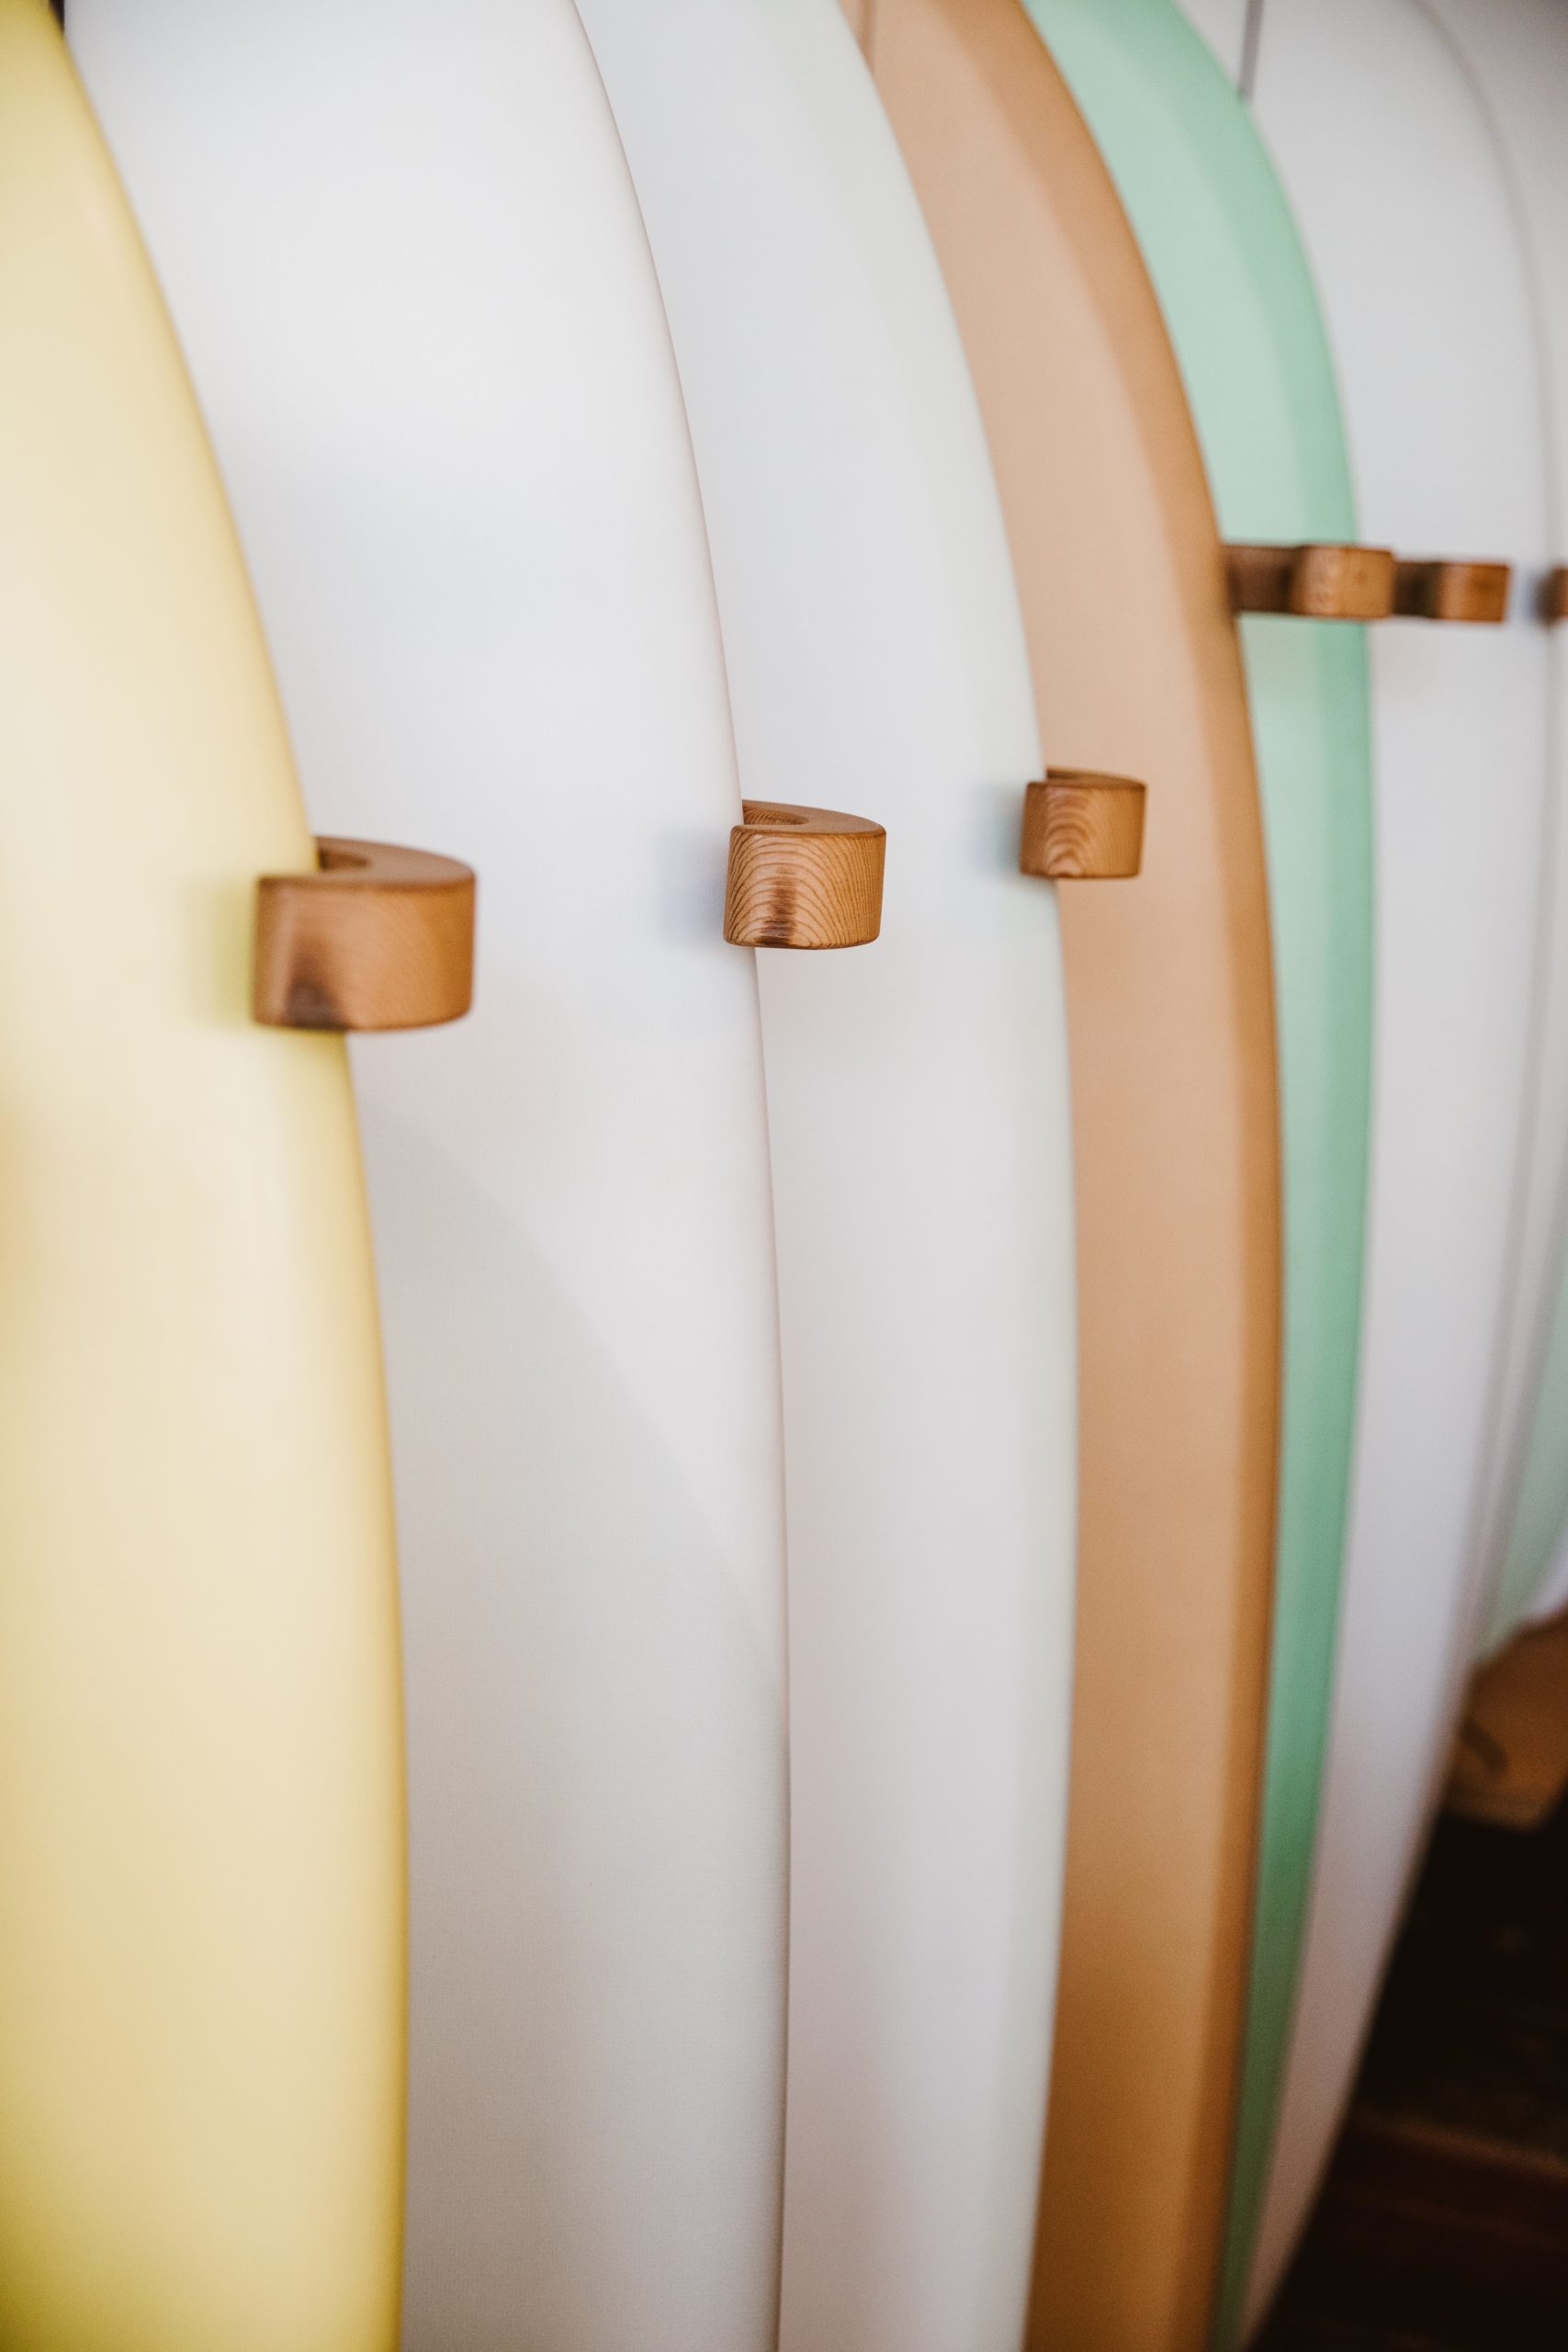 Best Surfboard Traction Pads: How To Select The Best?